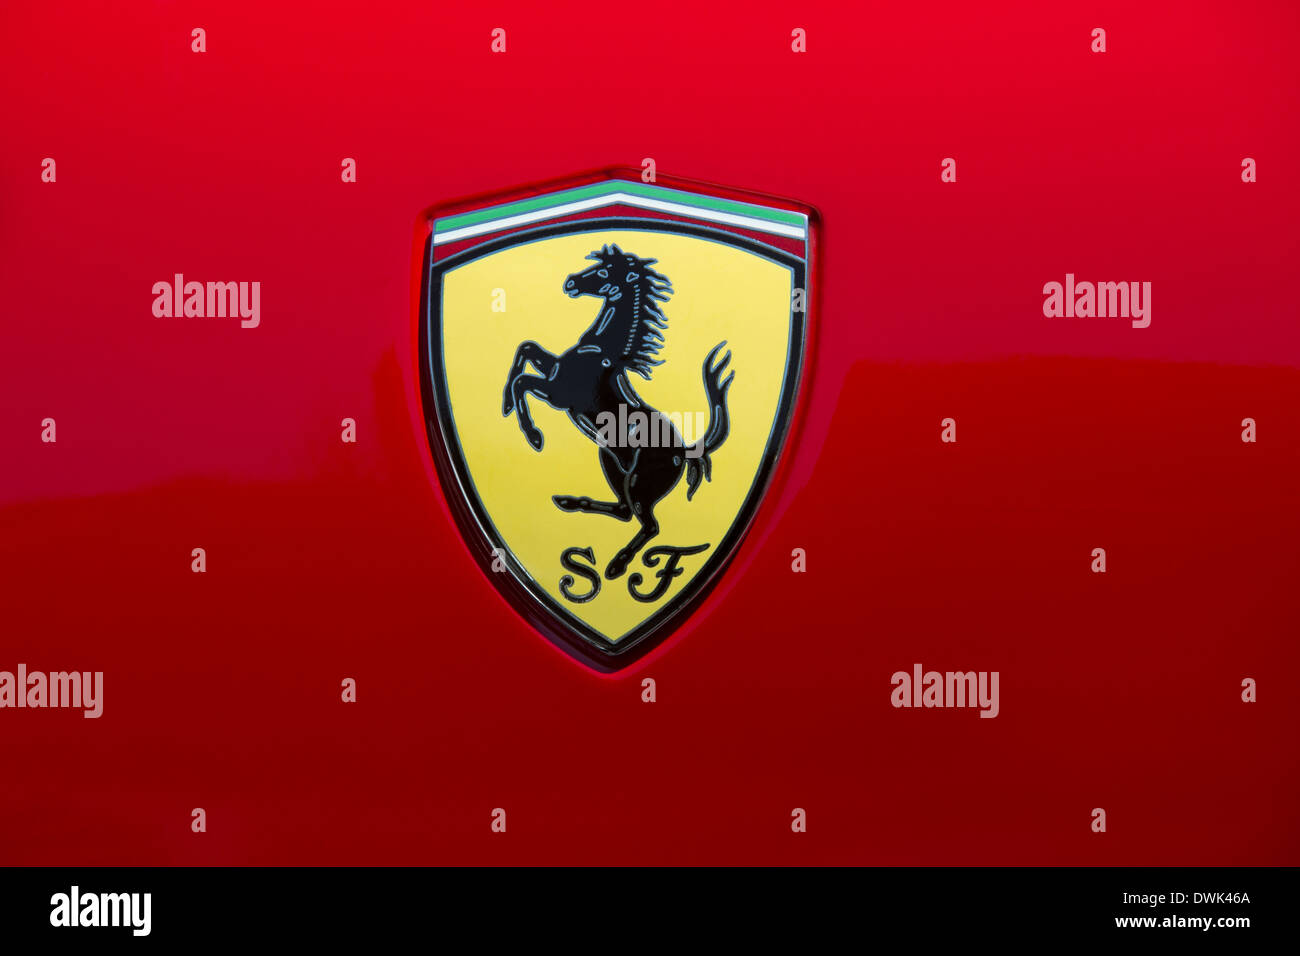 Prancing horse ferrari badge on red car stock photo 125798433 alamy ferrari prancing horse symbol on the front of a ferrari sports car stock buycottarizona Choice Image